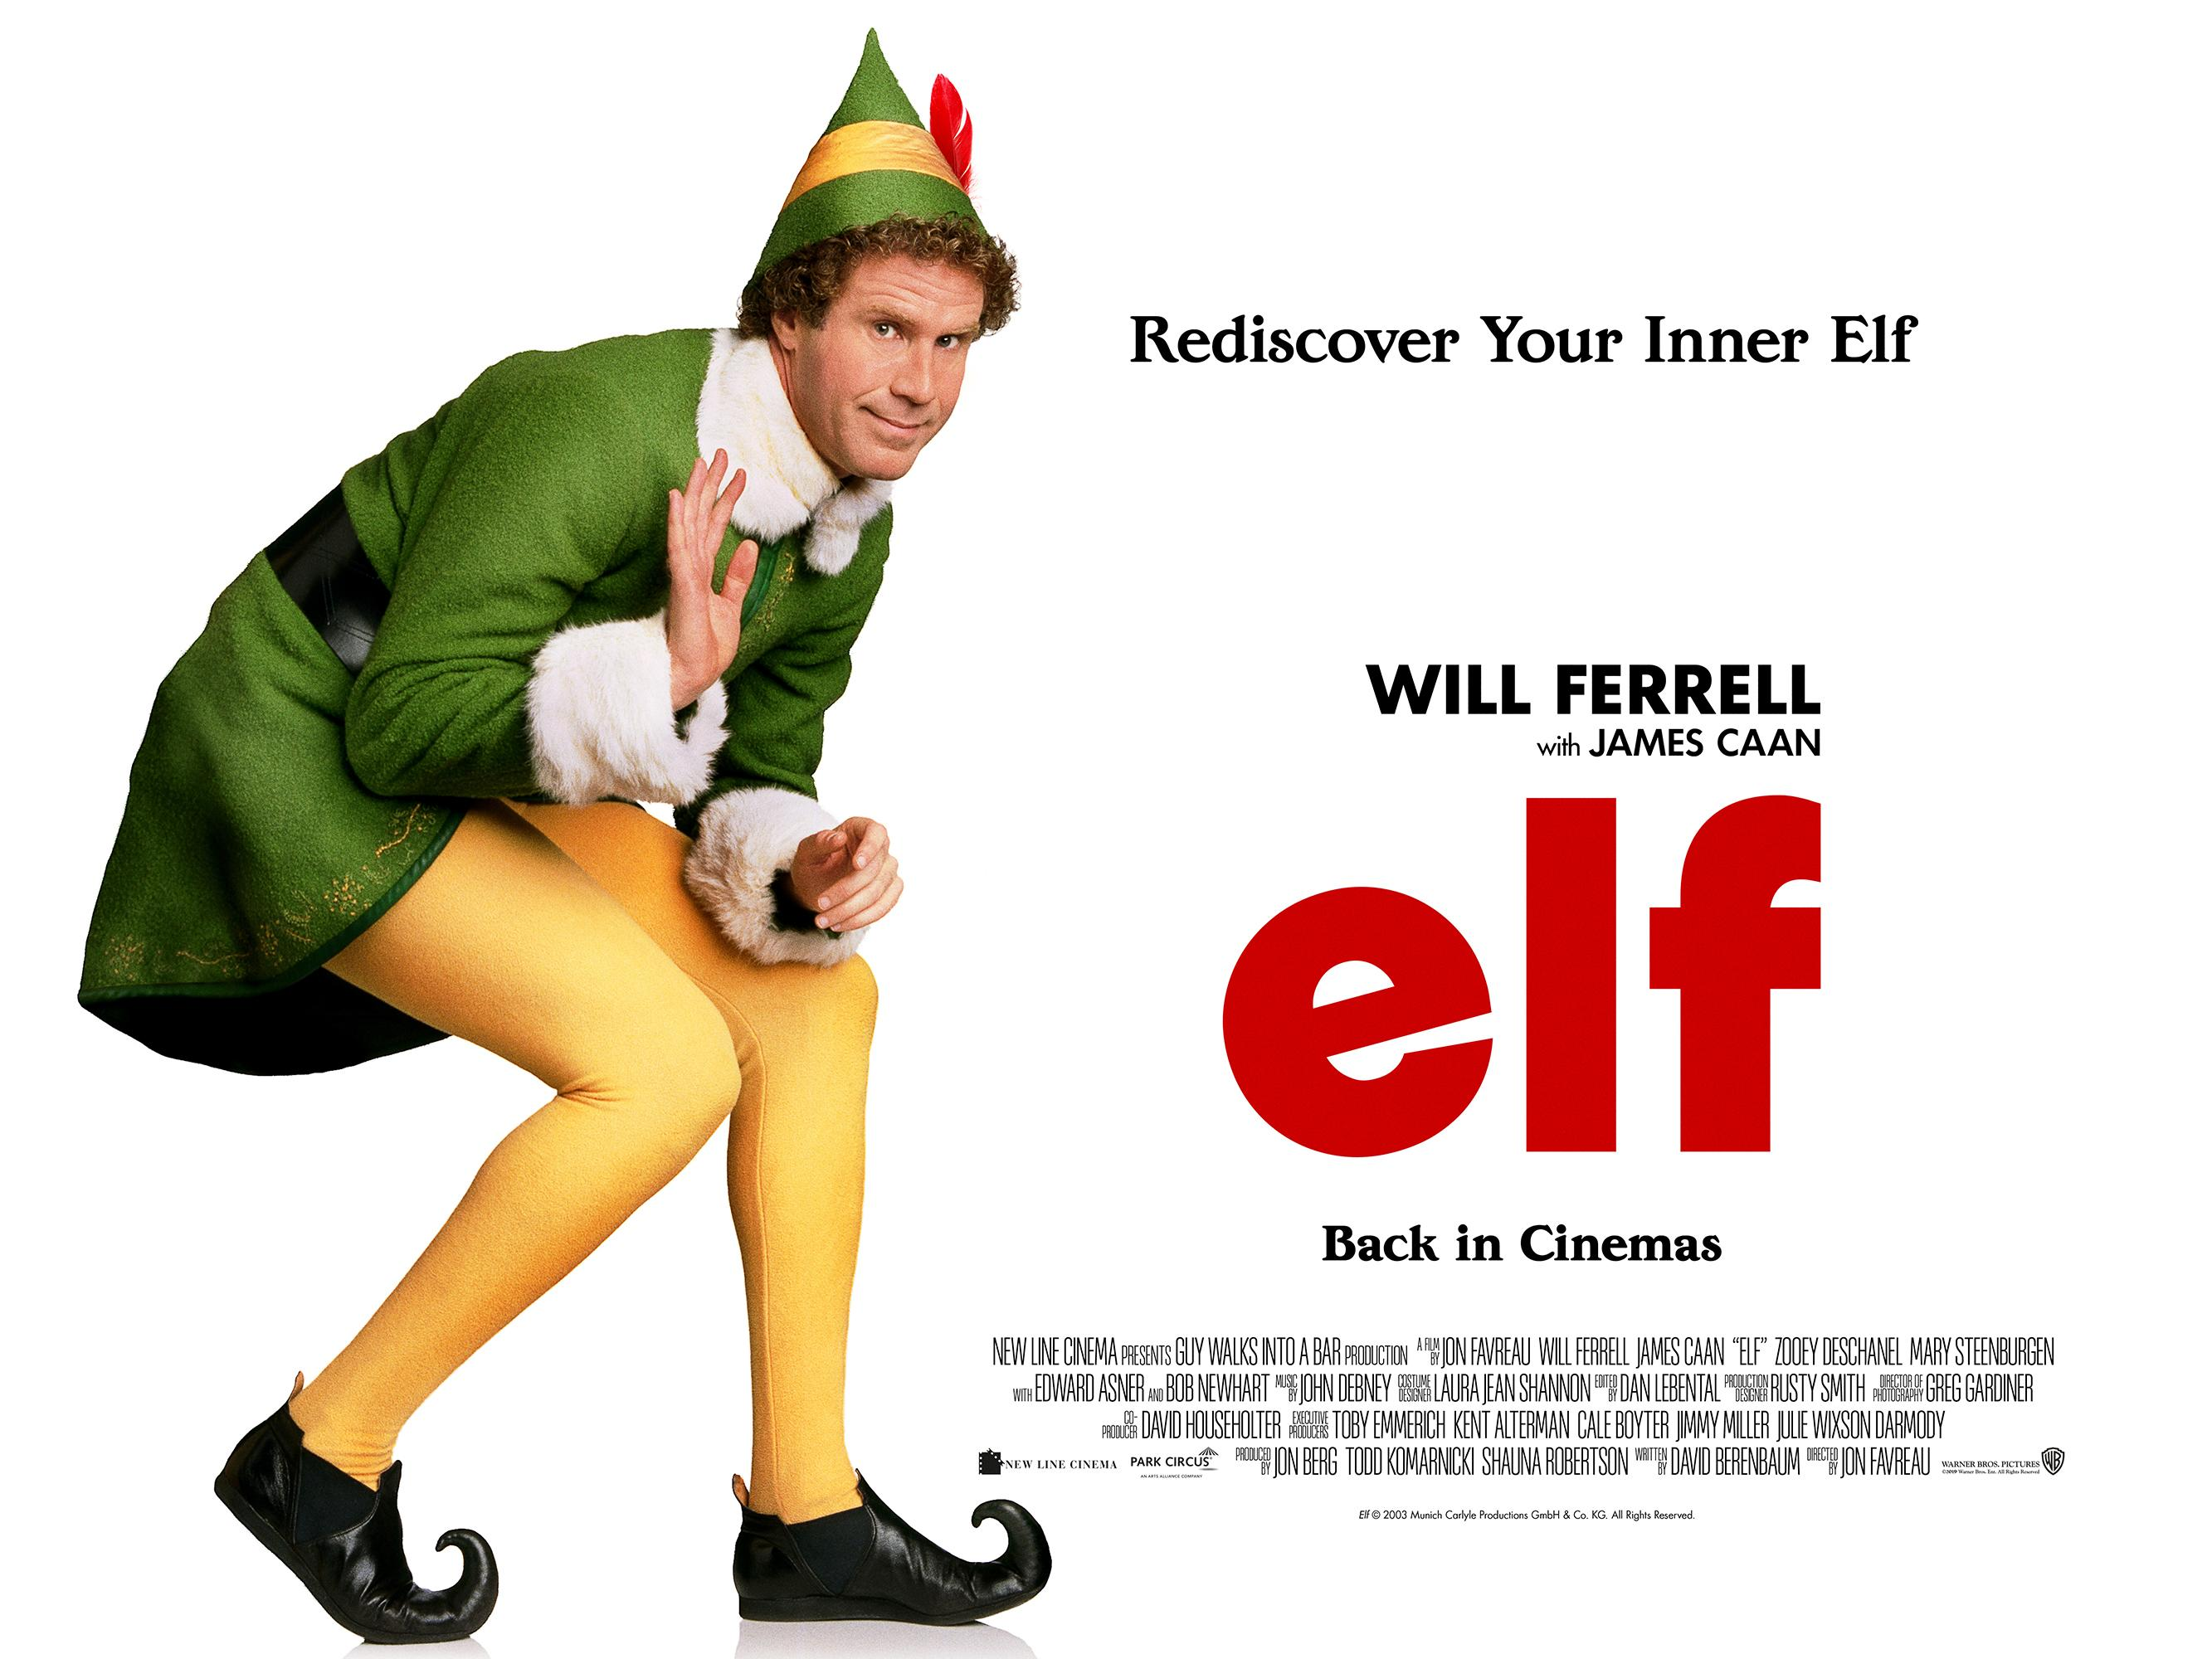 Will Ferrell's Buddy the Elf is back in cinemas this Christmas. (Park Circus/Warner Bros.)